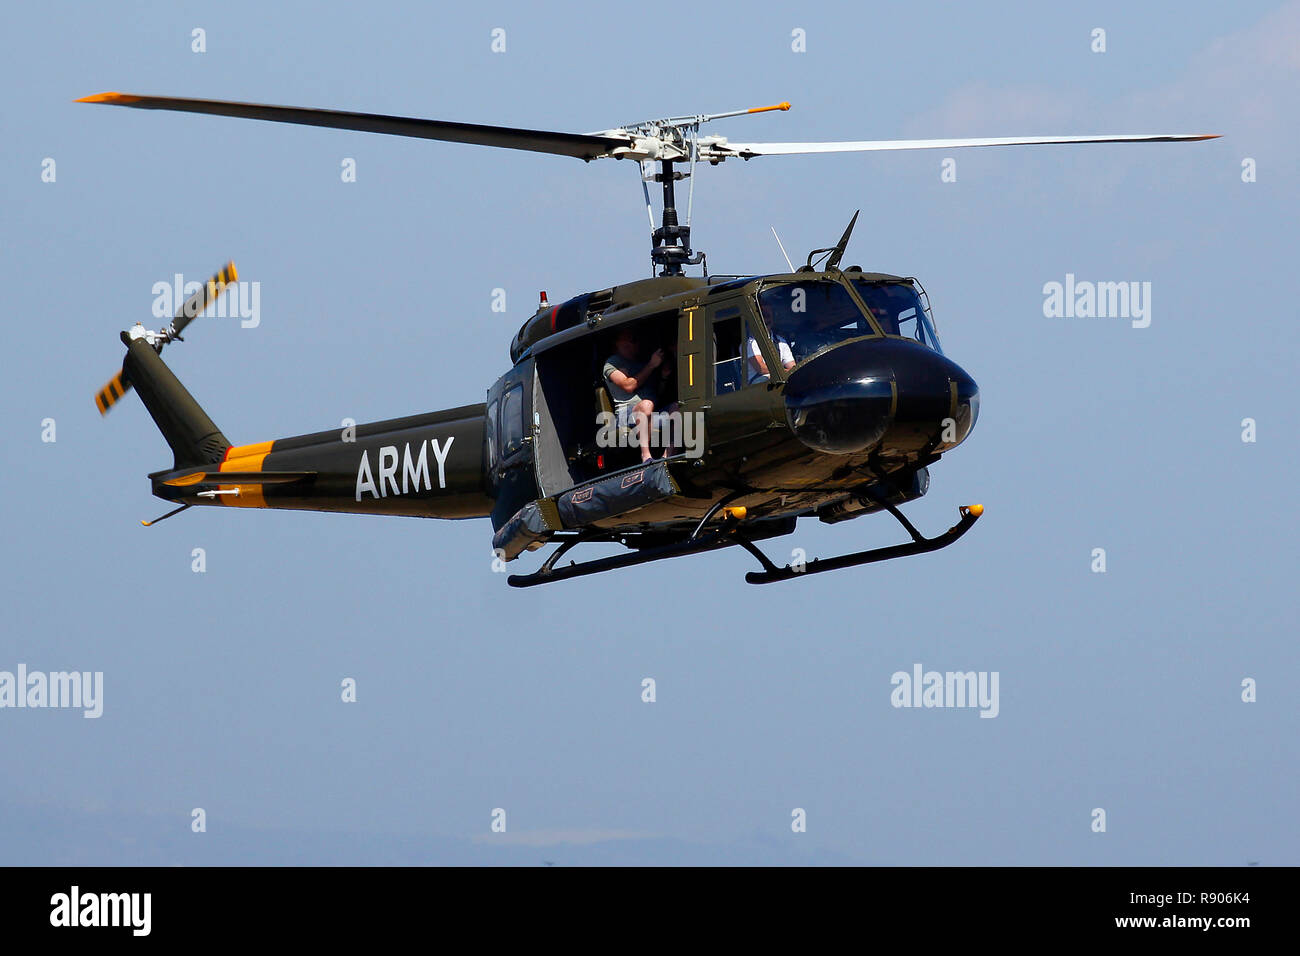 An ex Vietnam Huey helicopter coming in to land at the V&A Waterfront heliport in Cape Town. - Stock Image